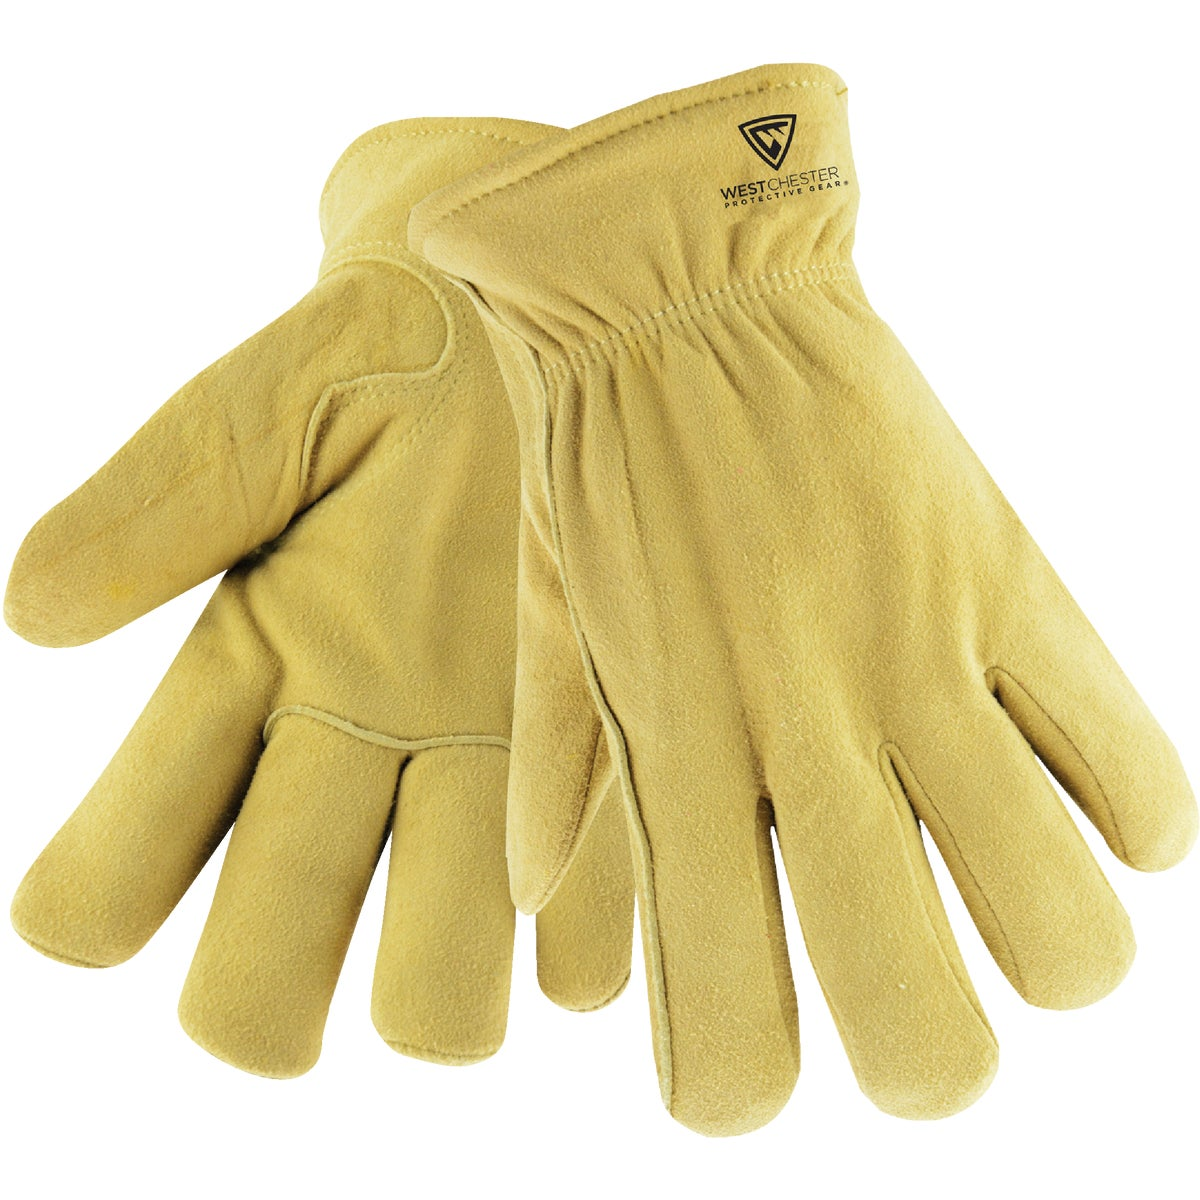 LRG GRIPS LINED GLOVE - 1091L by Wells Lamont